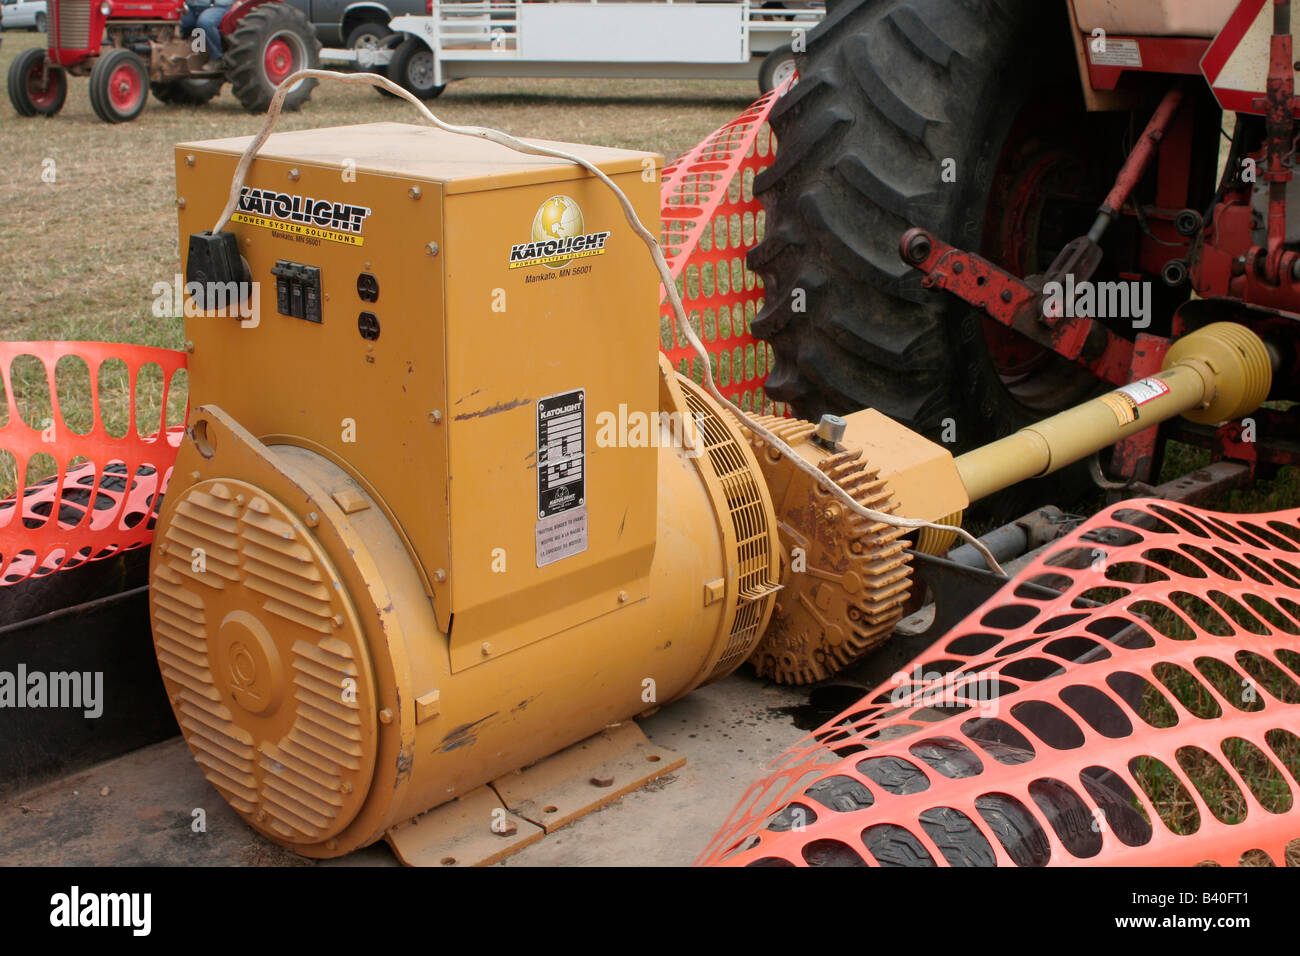 Electrical Shaft Drive Tractor : Large power take off pto shaft driven electric generator